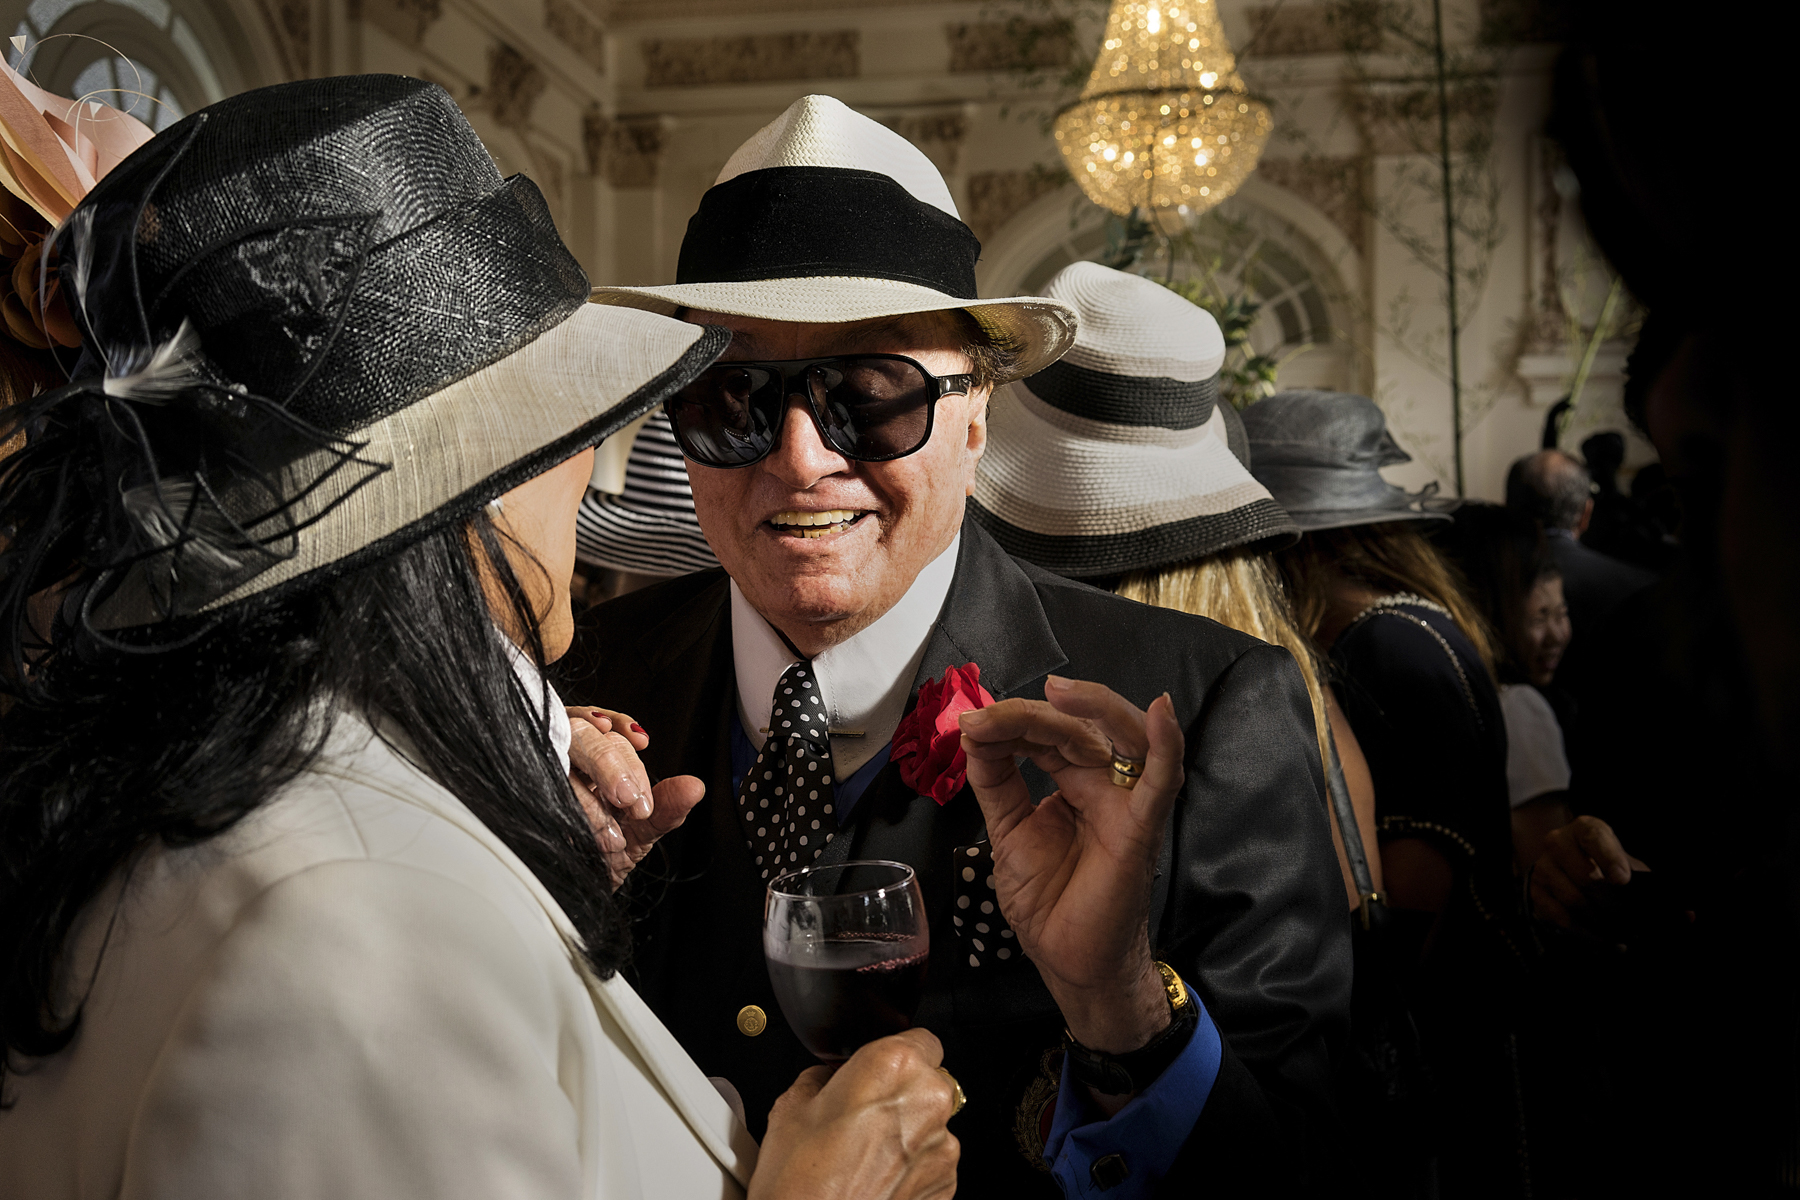 JUNE 2014, RIO DE JANEIRO, BRAZIL: Members of the Rio�s elite talking at the VIP area oft the Gavea Golf Country Club during the Annual Jockey National Award. It�s  the meeting point for the rich people of Rio de Janeiro, whether for a round of golf or a drink.